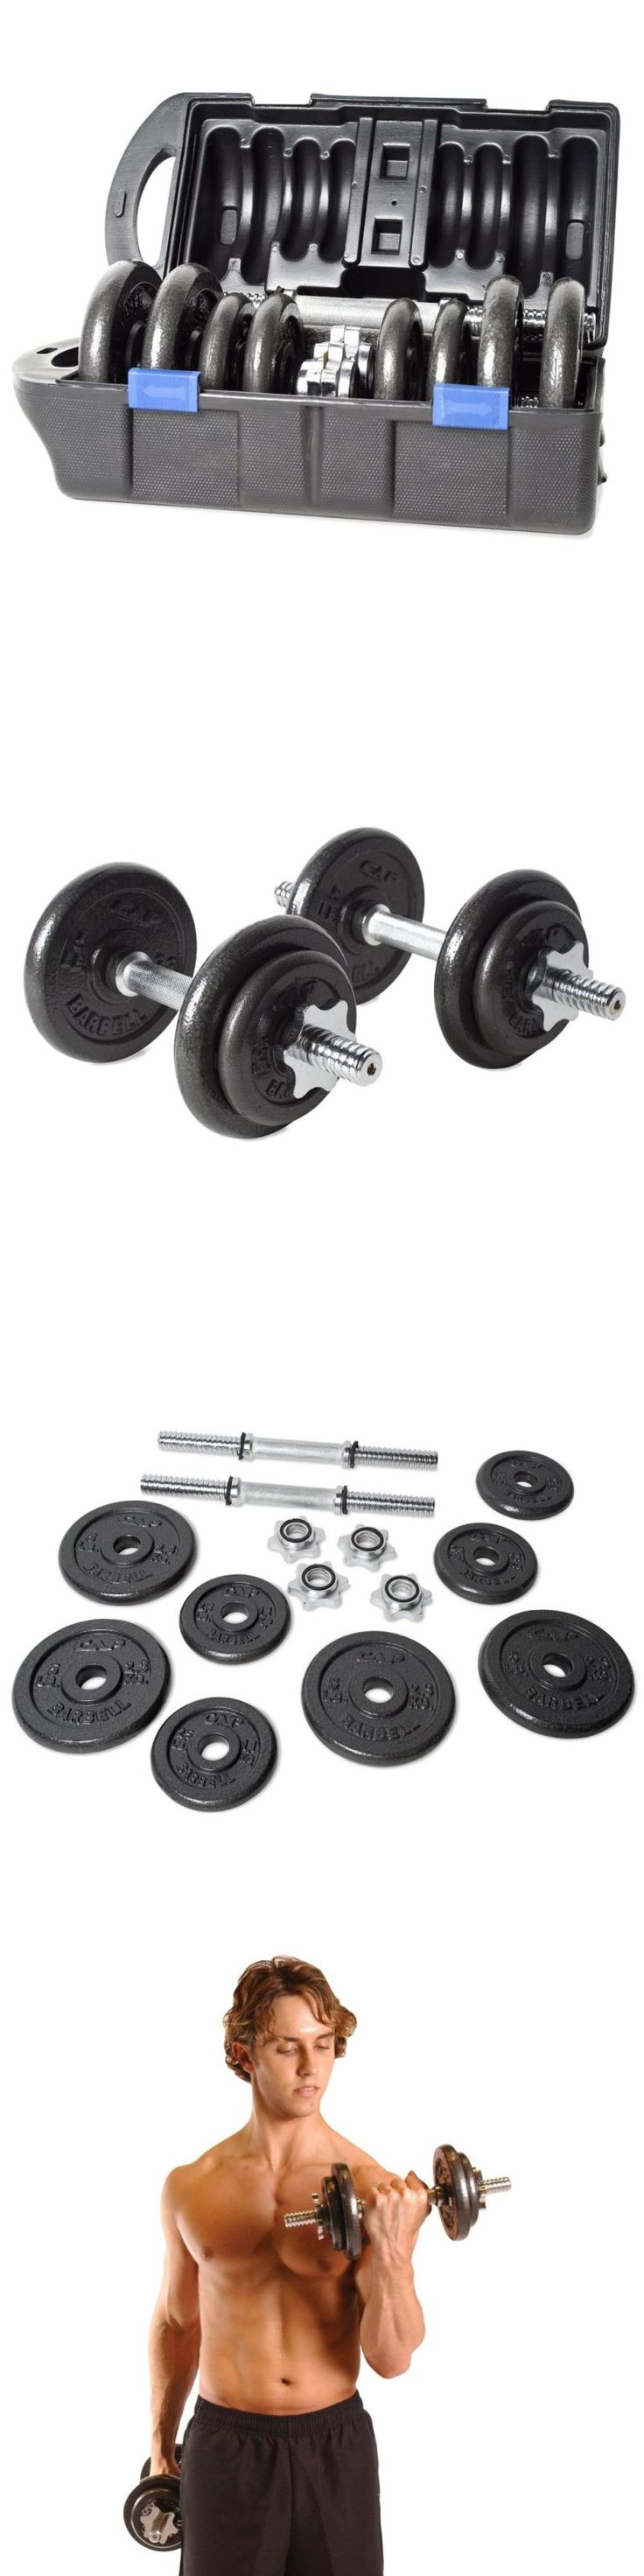 Dumbbells 137865: Dumbbell Weight Set 40 Lbs Pair Adjustable Body Workout Free Weights Portable -> BUY IT NOW ONLY: $65.19 on eBay!